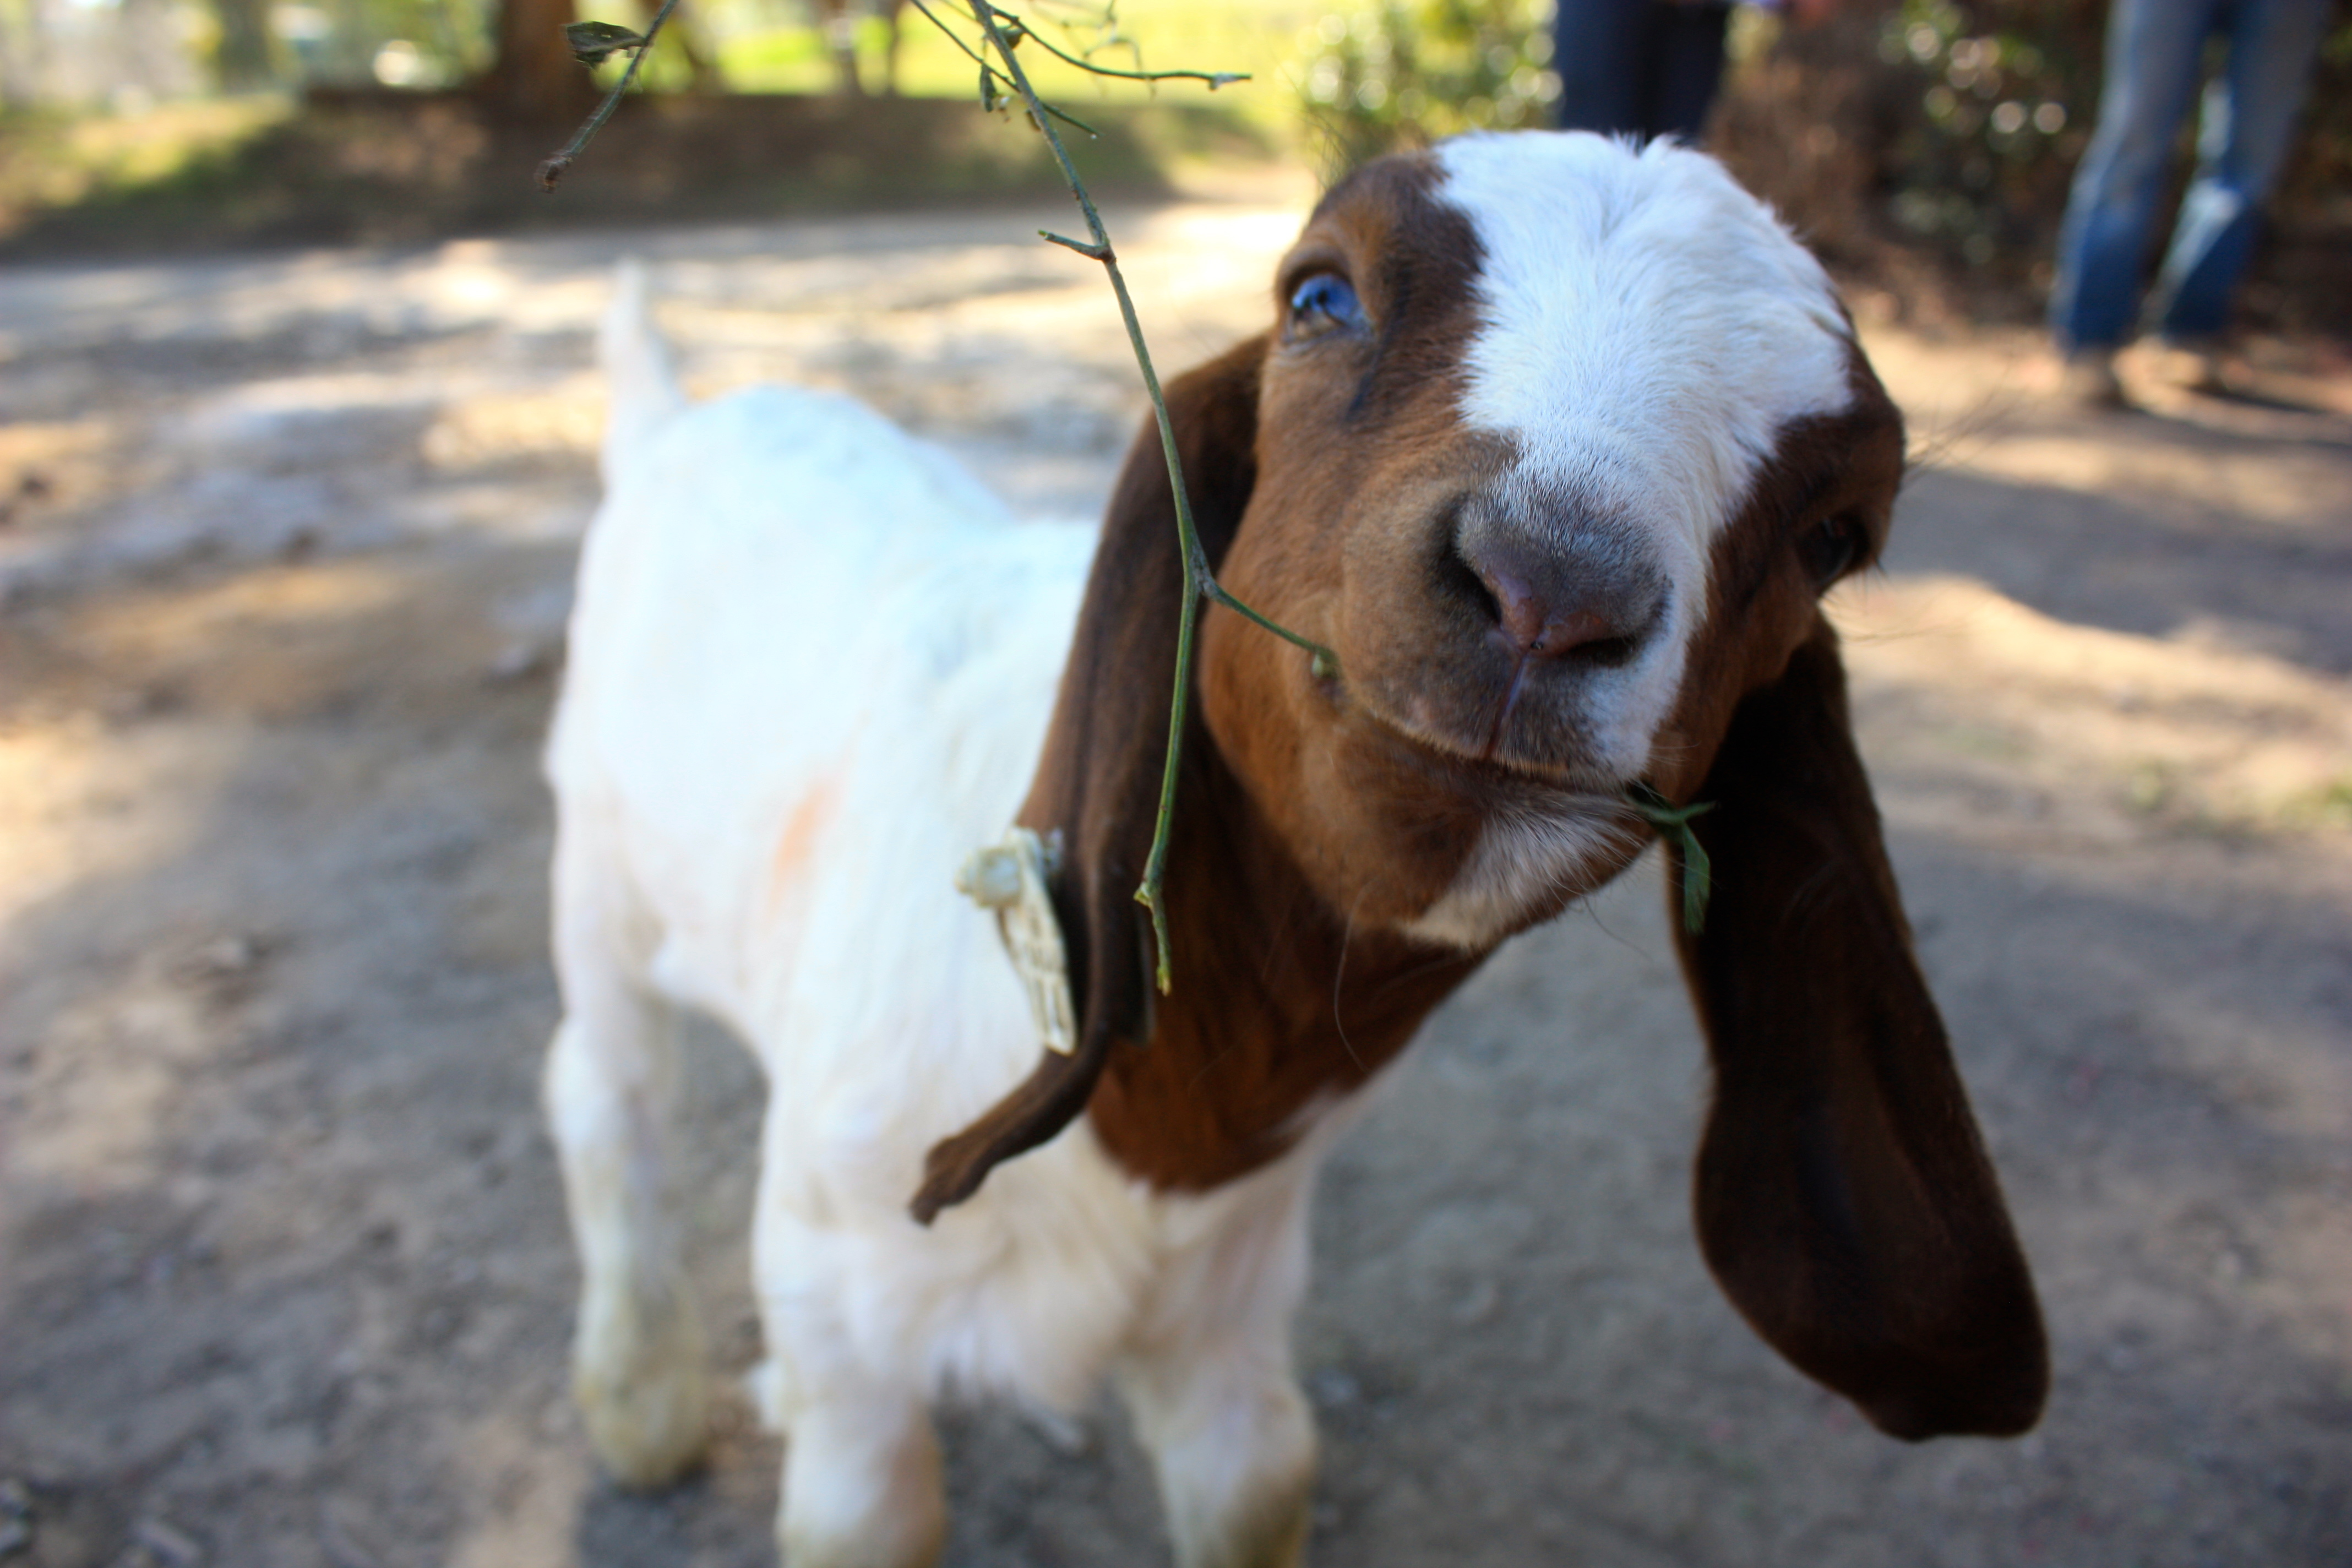 Agriculture Department hosts fundraiser in hopes of adopting orphaned goat